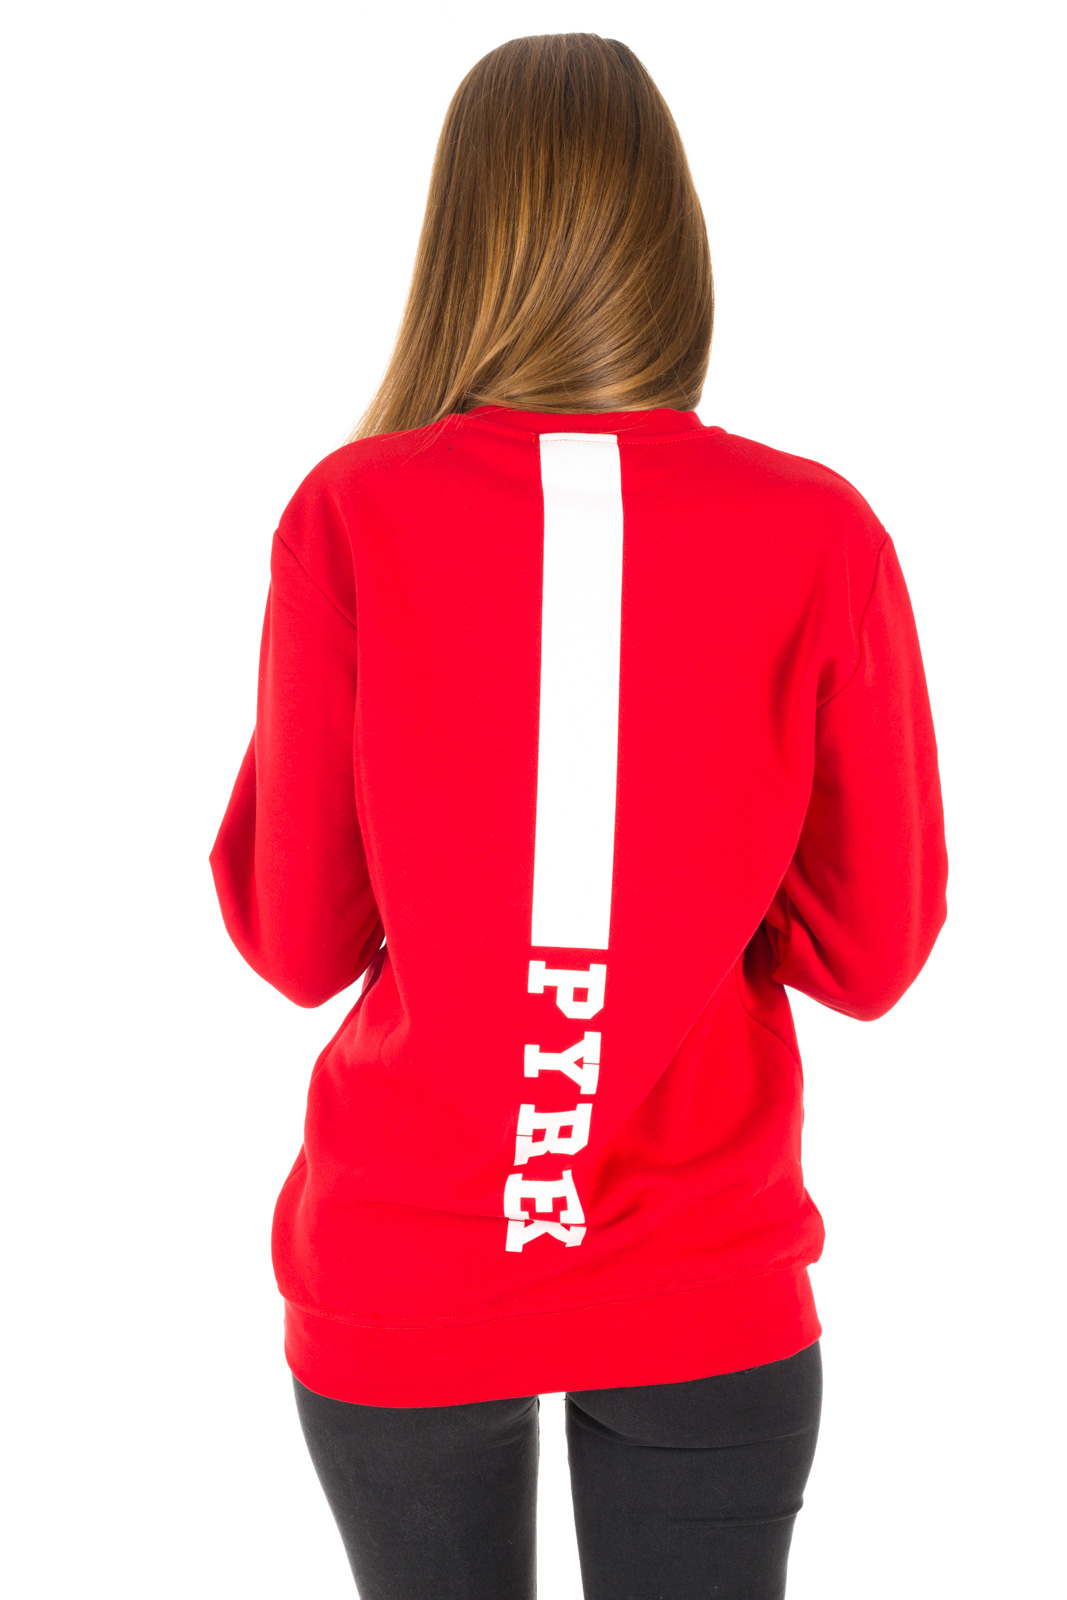 Pyrex - Red Unisex Sweatshirt